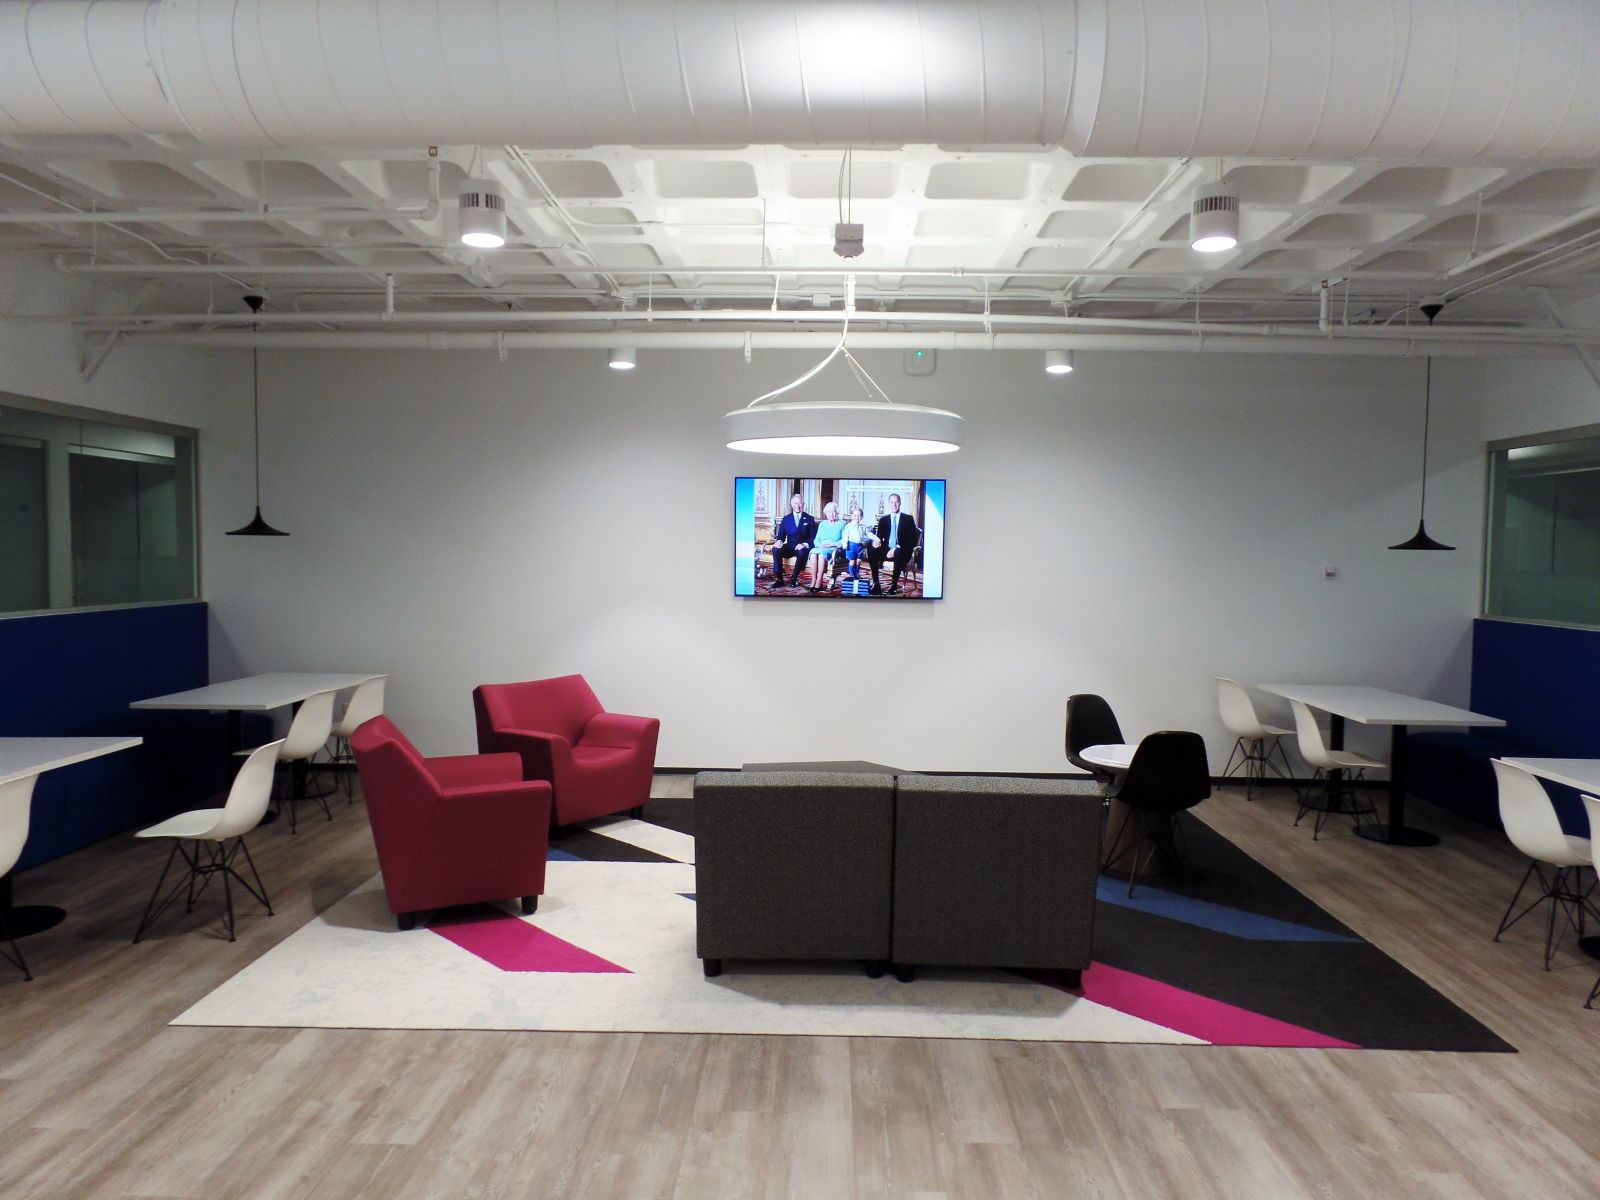 MakeOffices at Magnificent Mile, Chicago